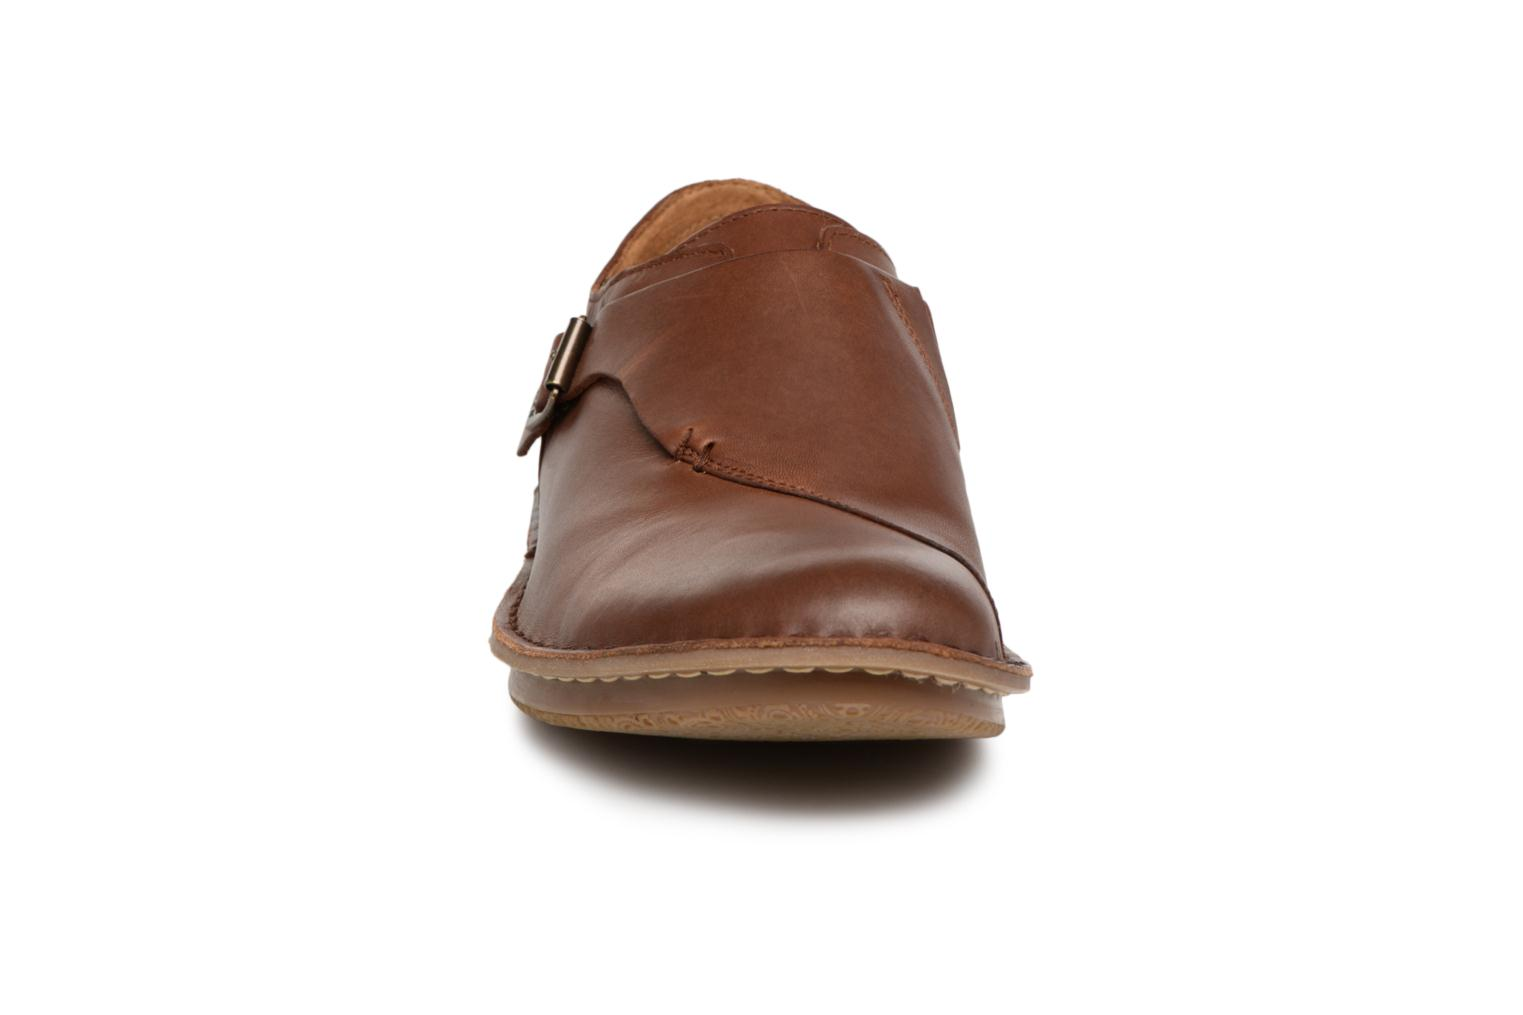 WABUCKLOW Marron 9